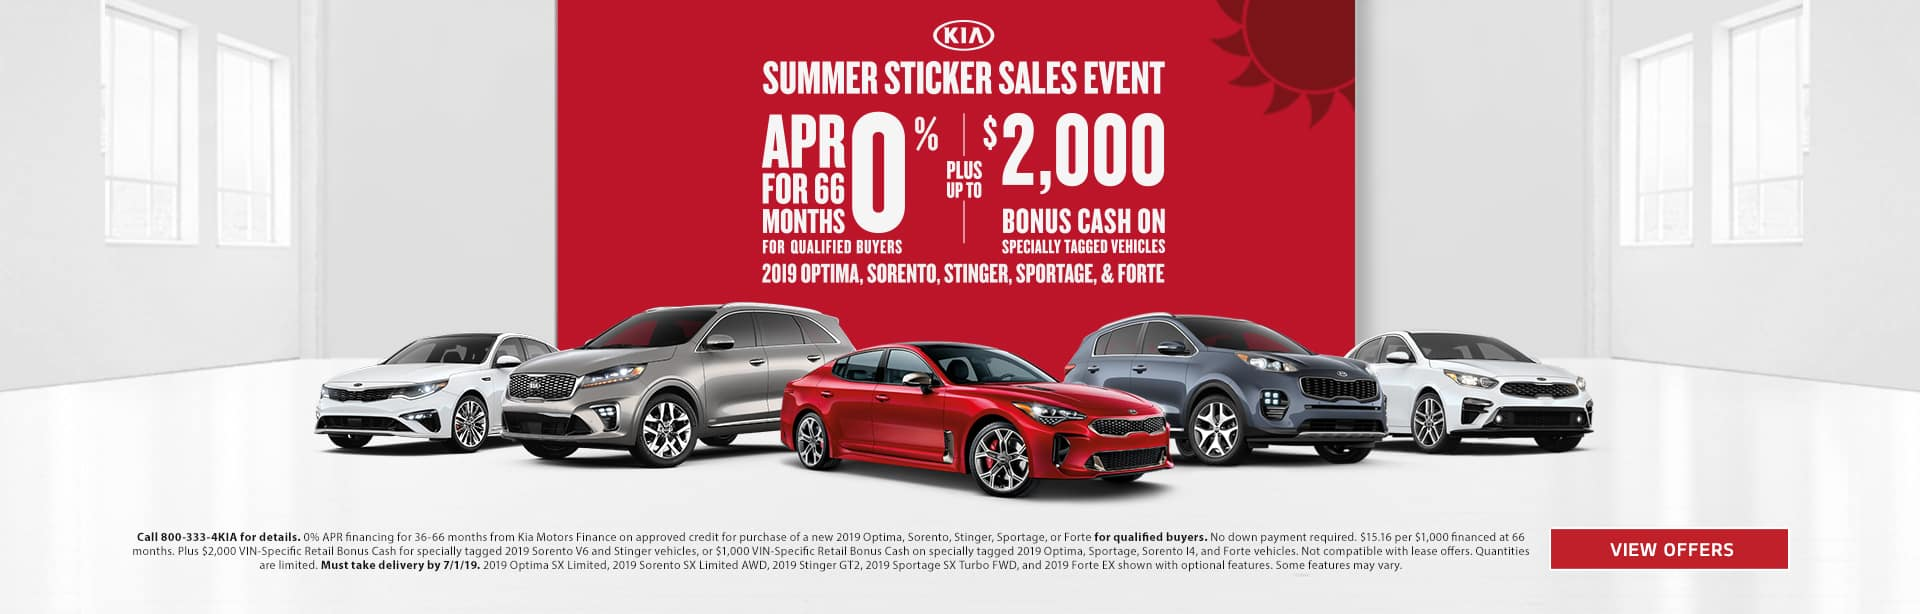 Summer Sticker Sales Event 201912